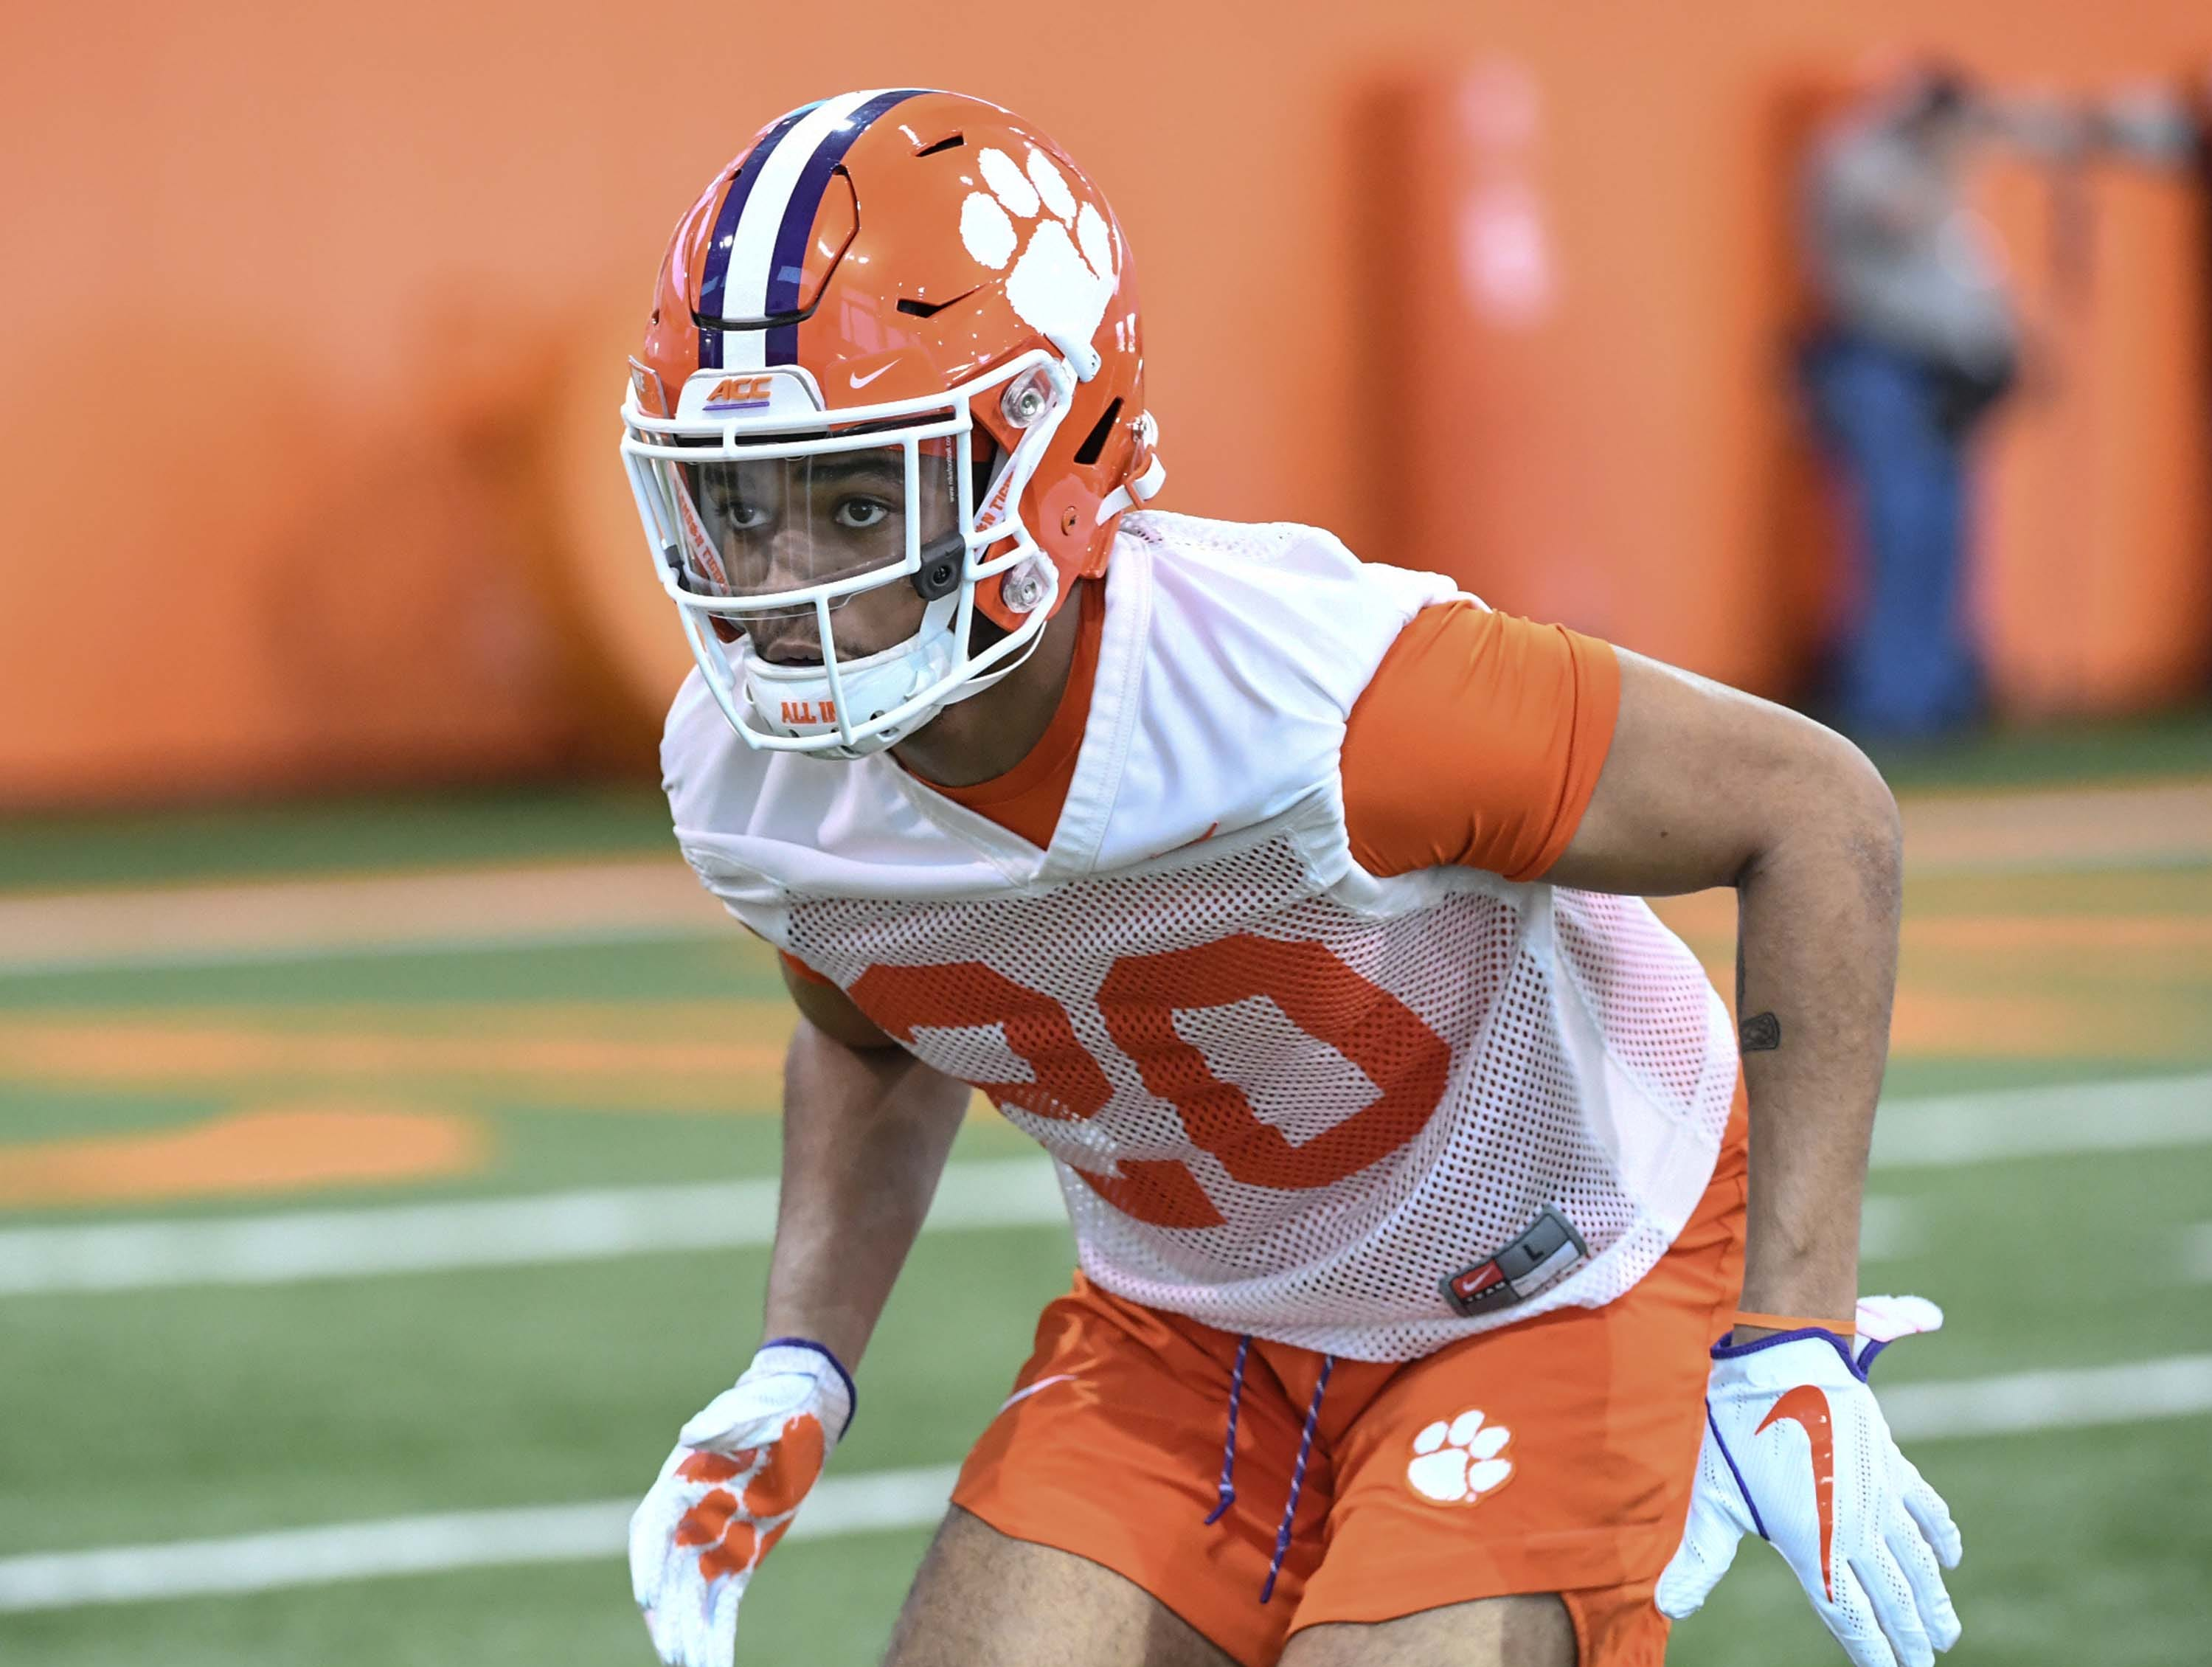 Clemson defensive back LeAnthony Williams (20) during the first practice at the Clemson Indoor Practice Facility in Clemson Wednesday, February 27, 2019.